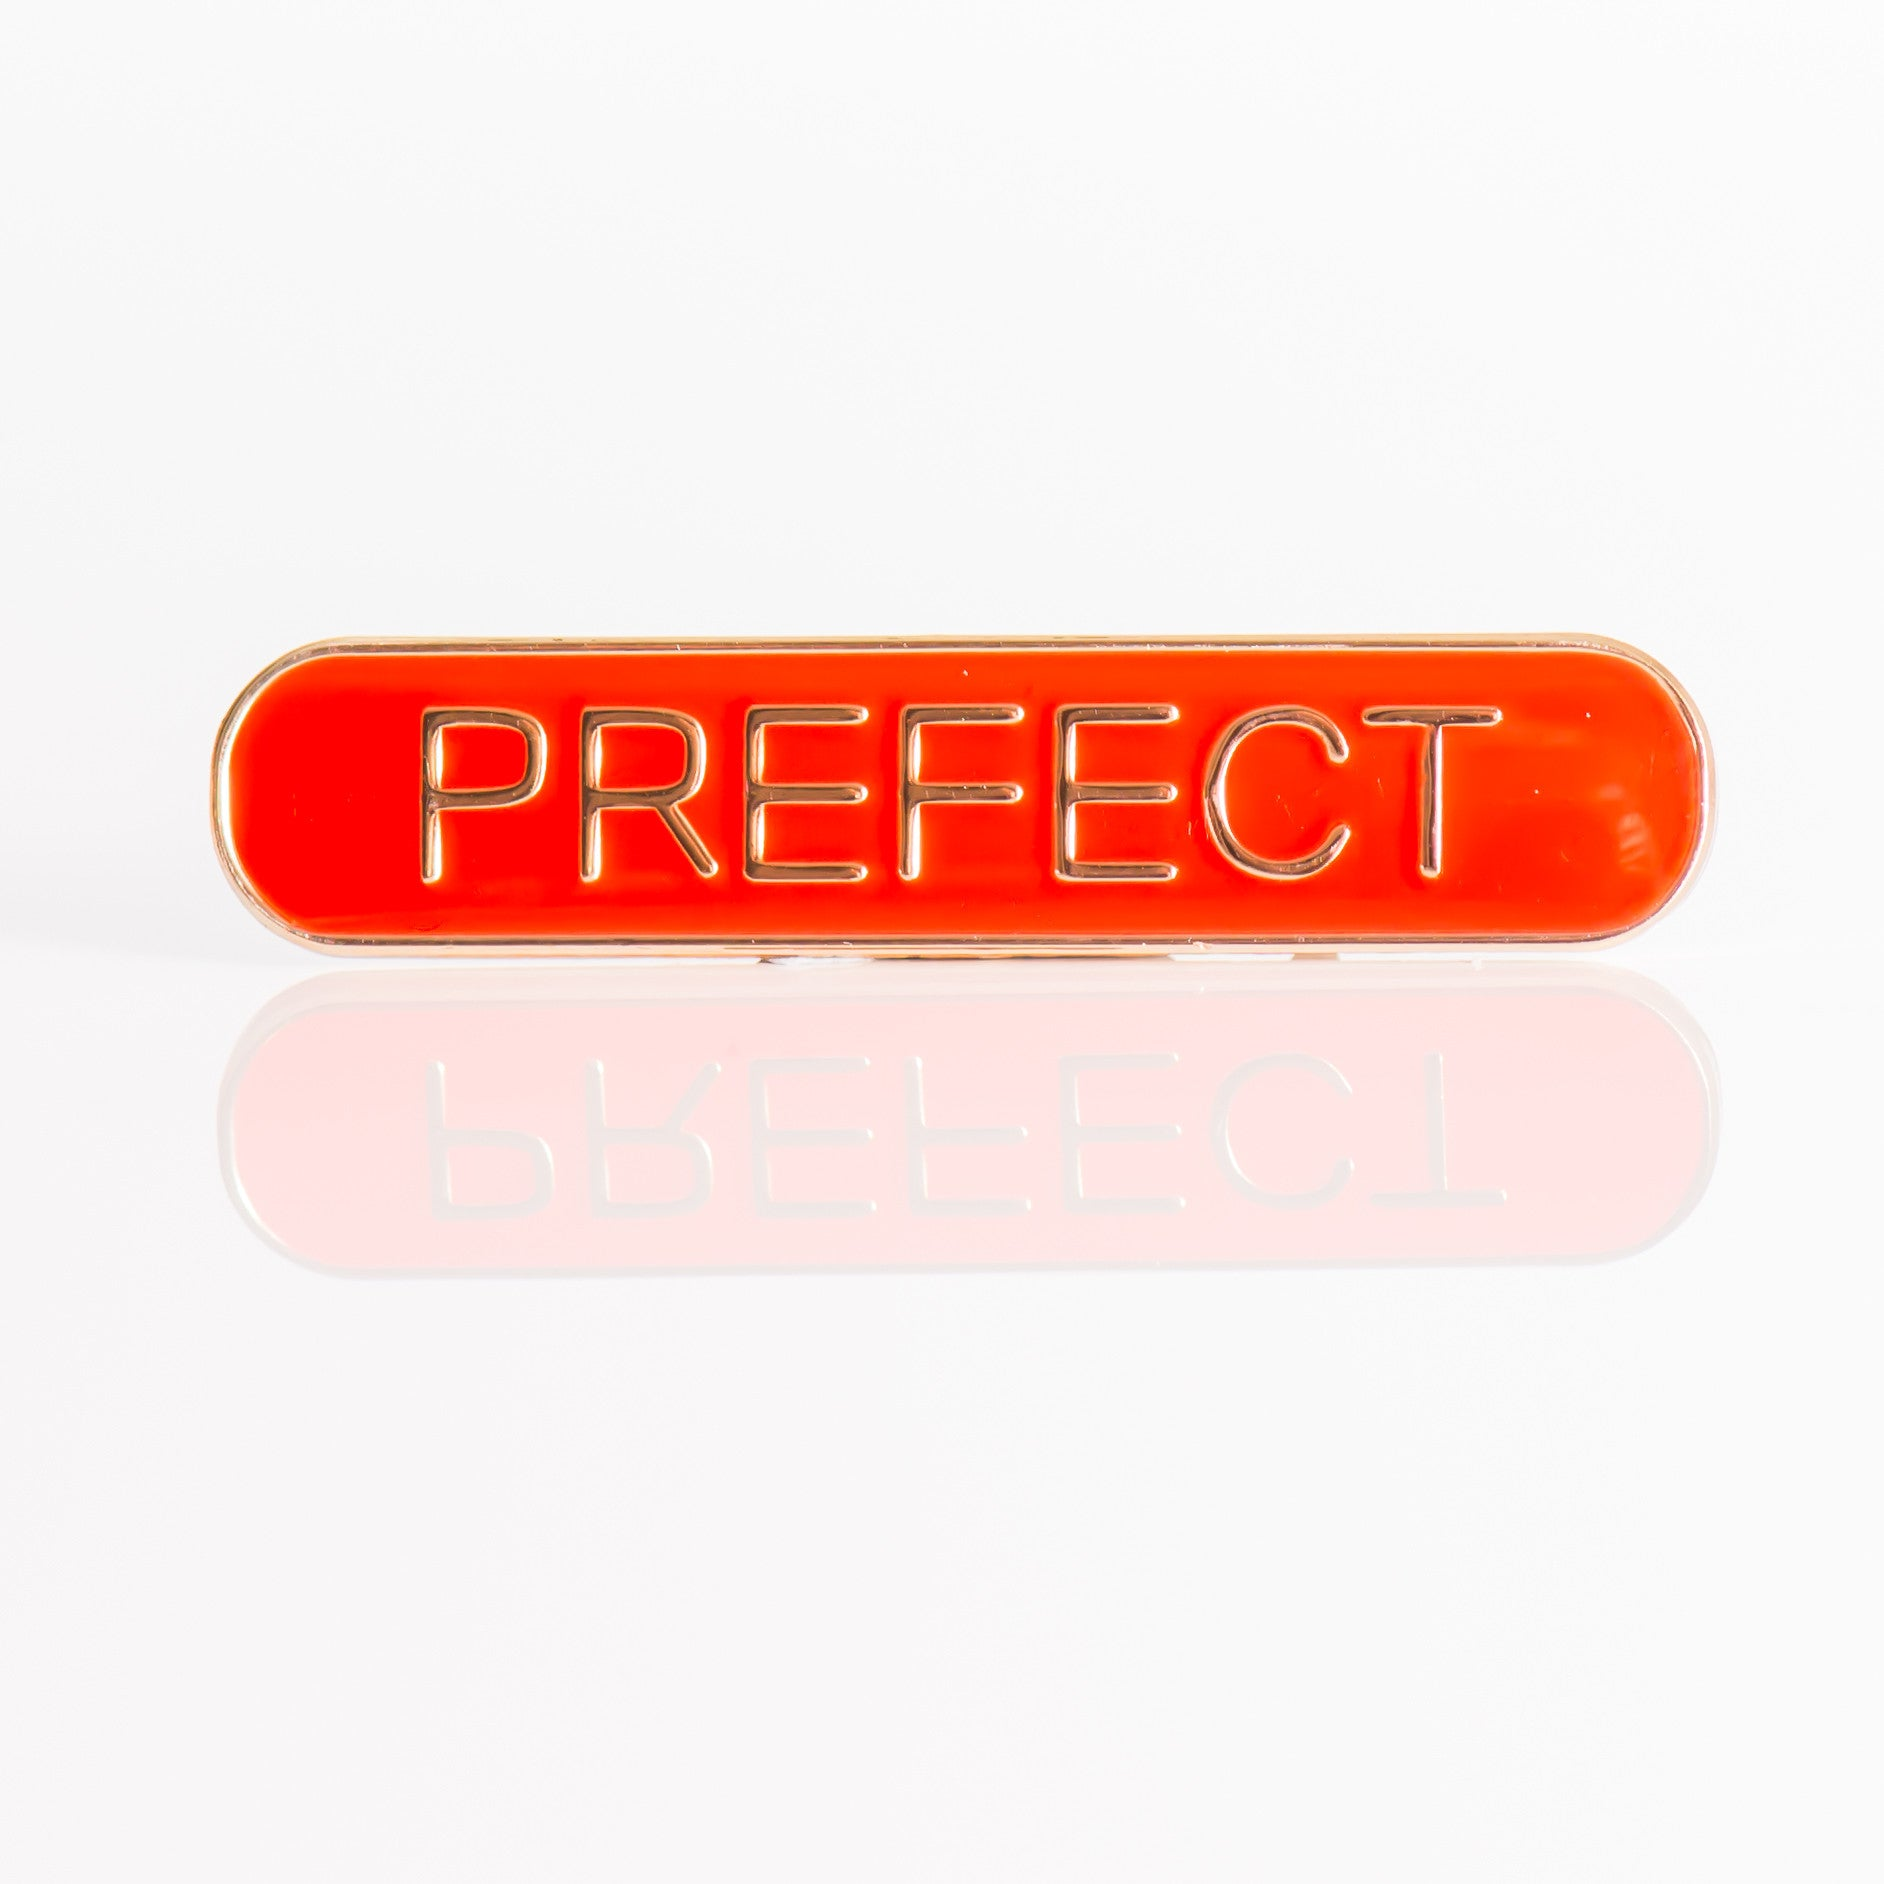 Enamel Bar Pin Badge - Prefect